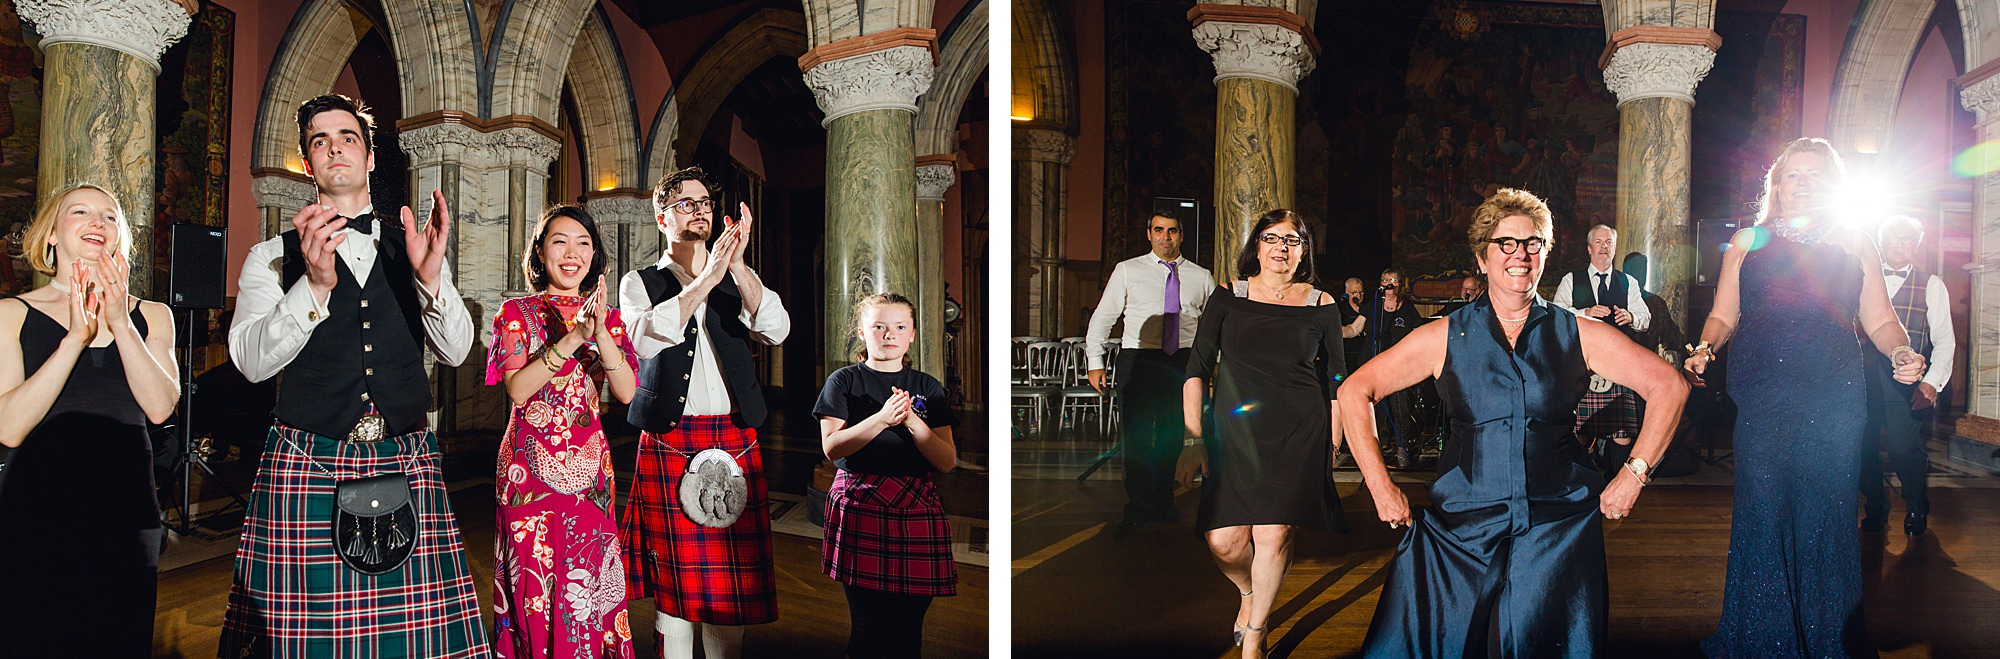 intimate wedding scotland guests ceilidh dancing